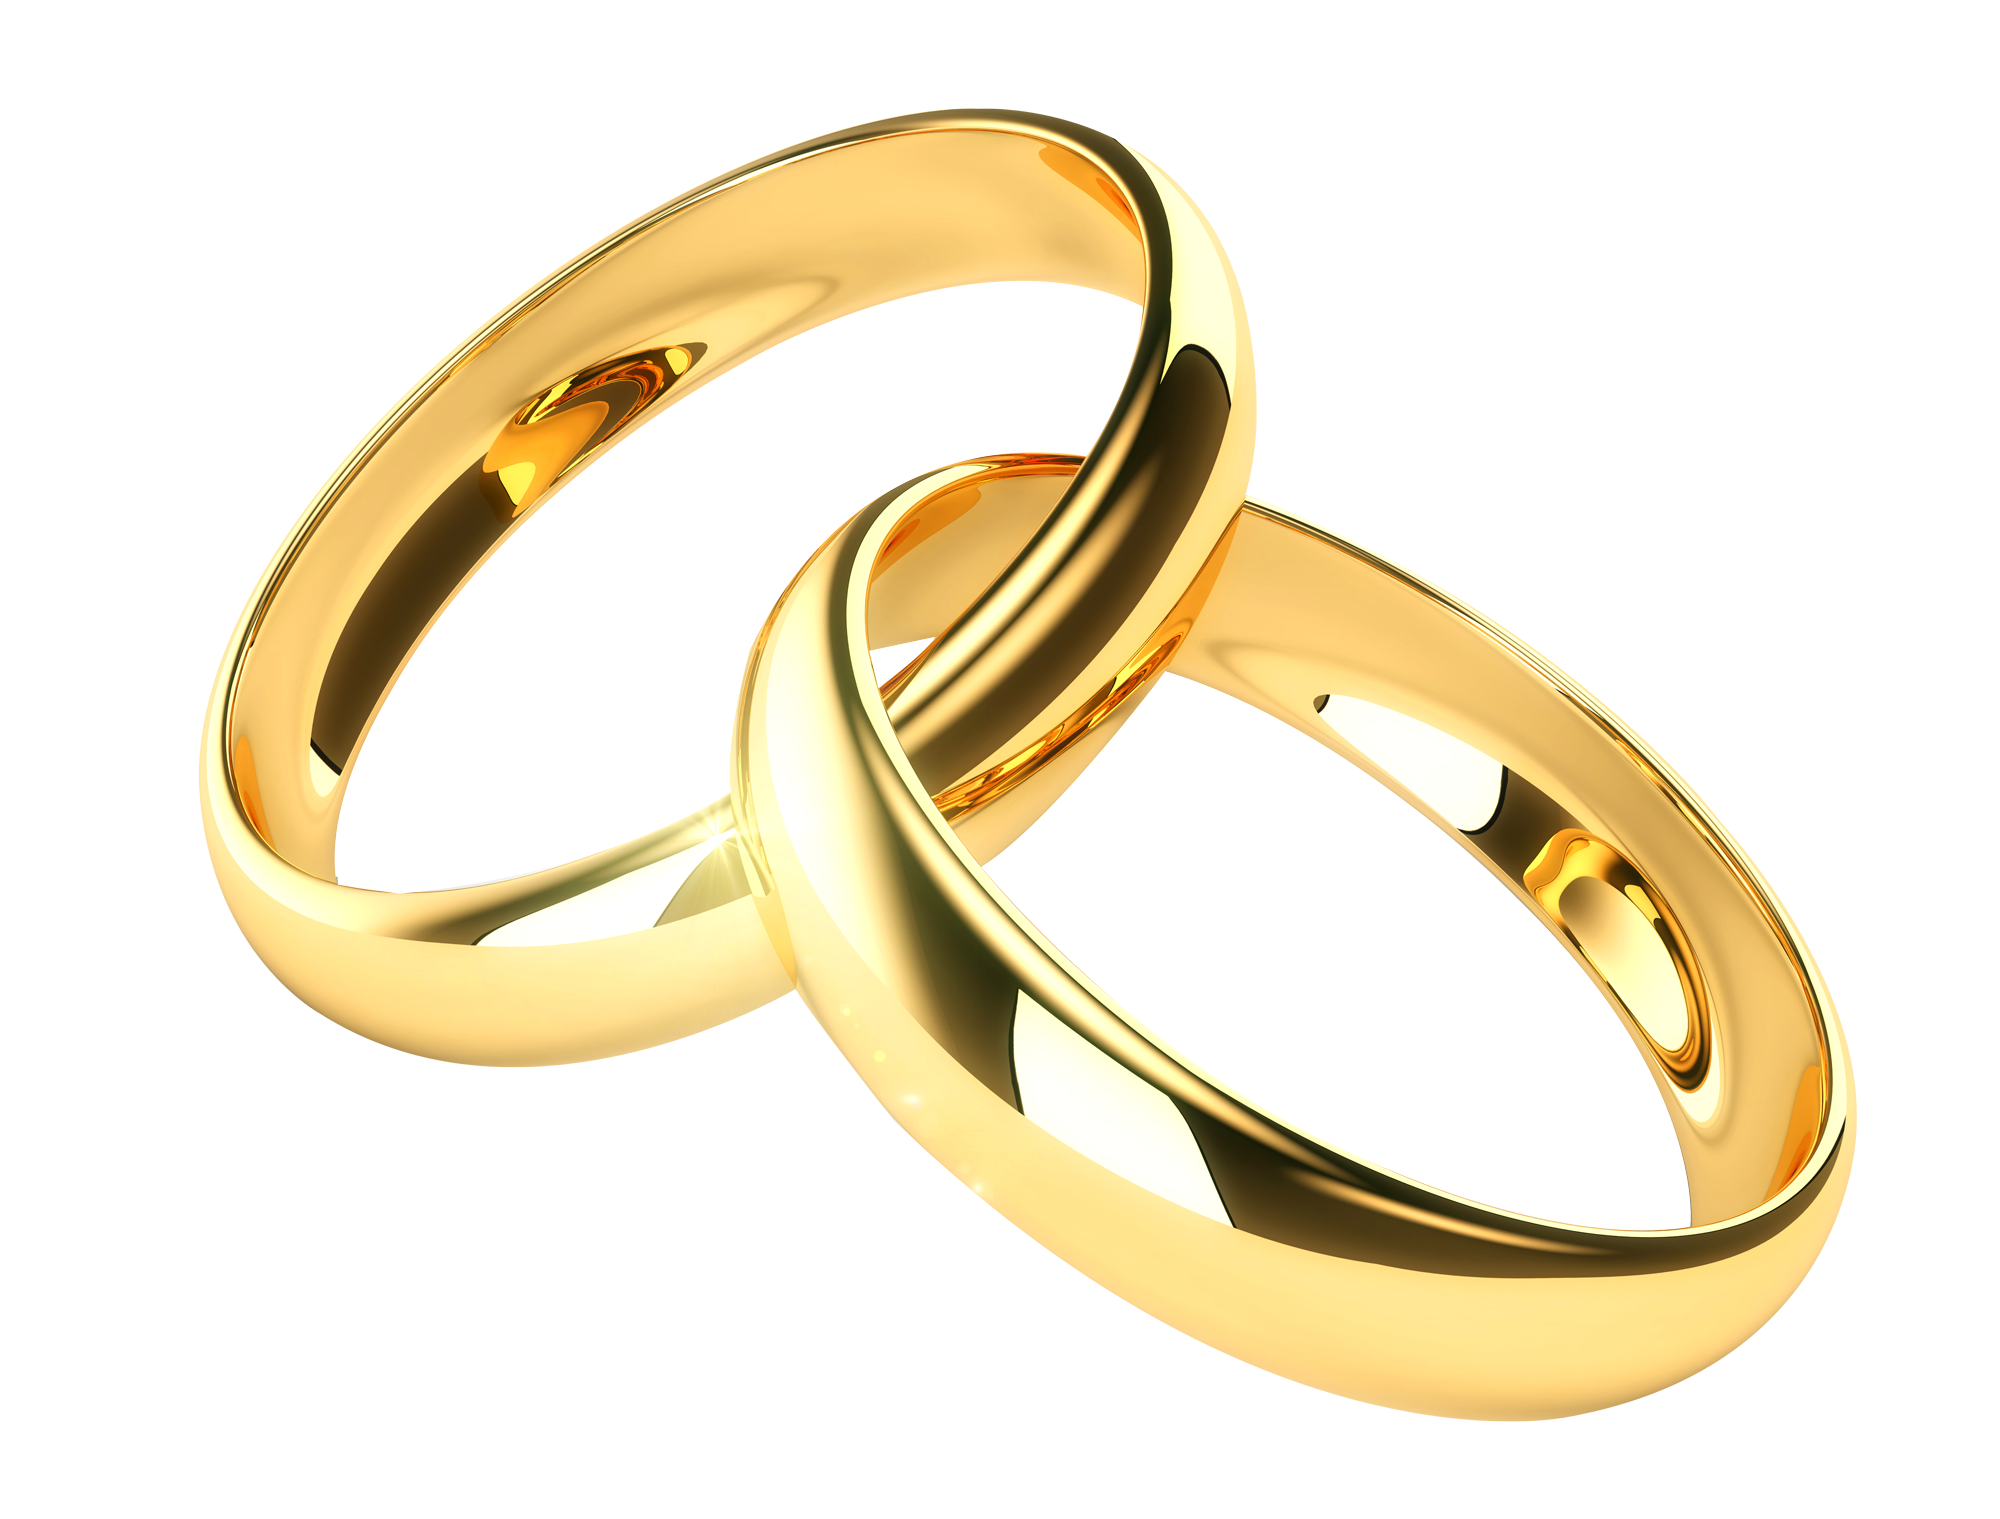 PNG Rings Wedding Transparent Rings Wedding.PNG Images..